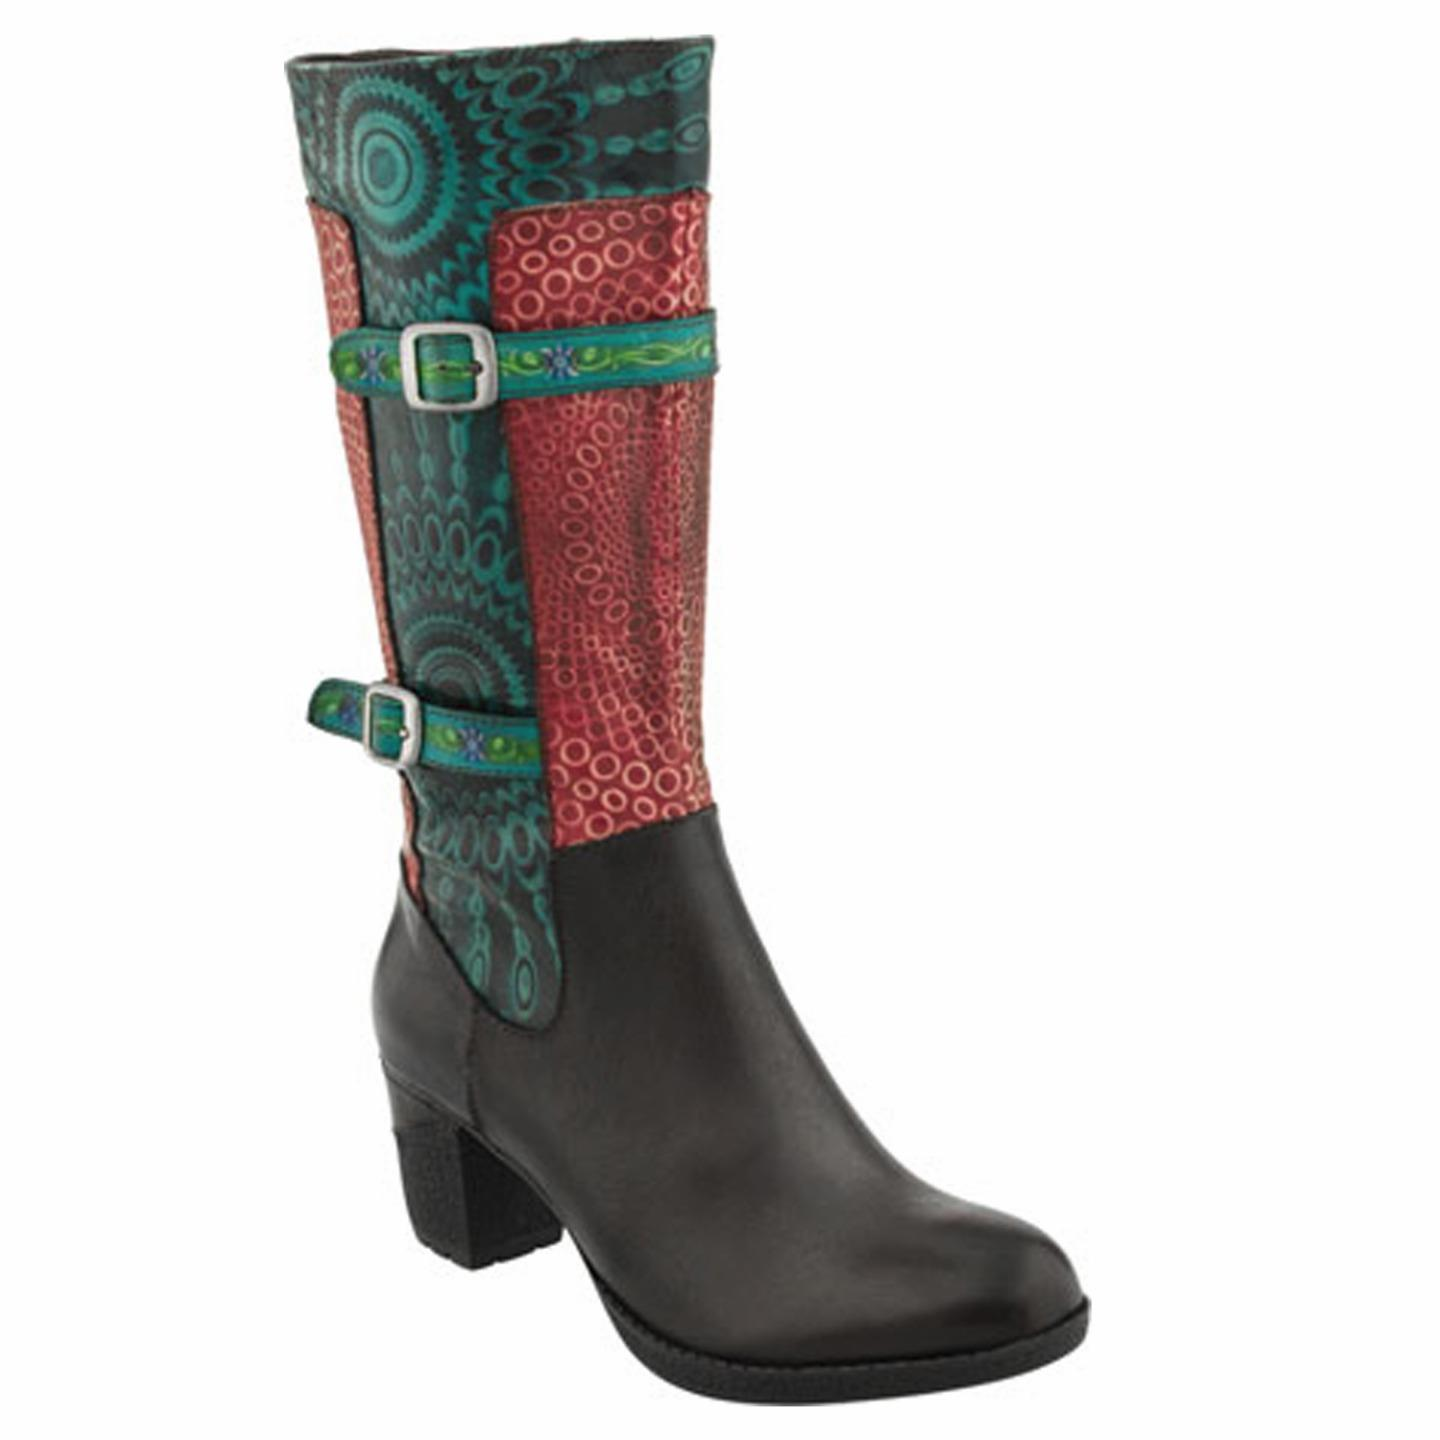 L'Artiste Carpeverde By Spring Step Black Leather Boots 35 EU   5 US Women by Spring Step